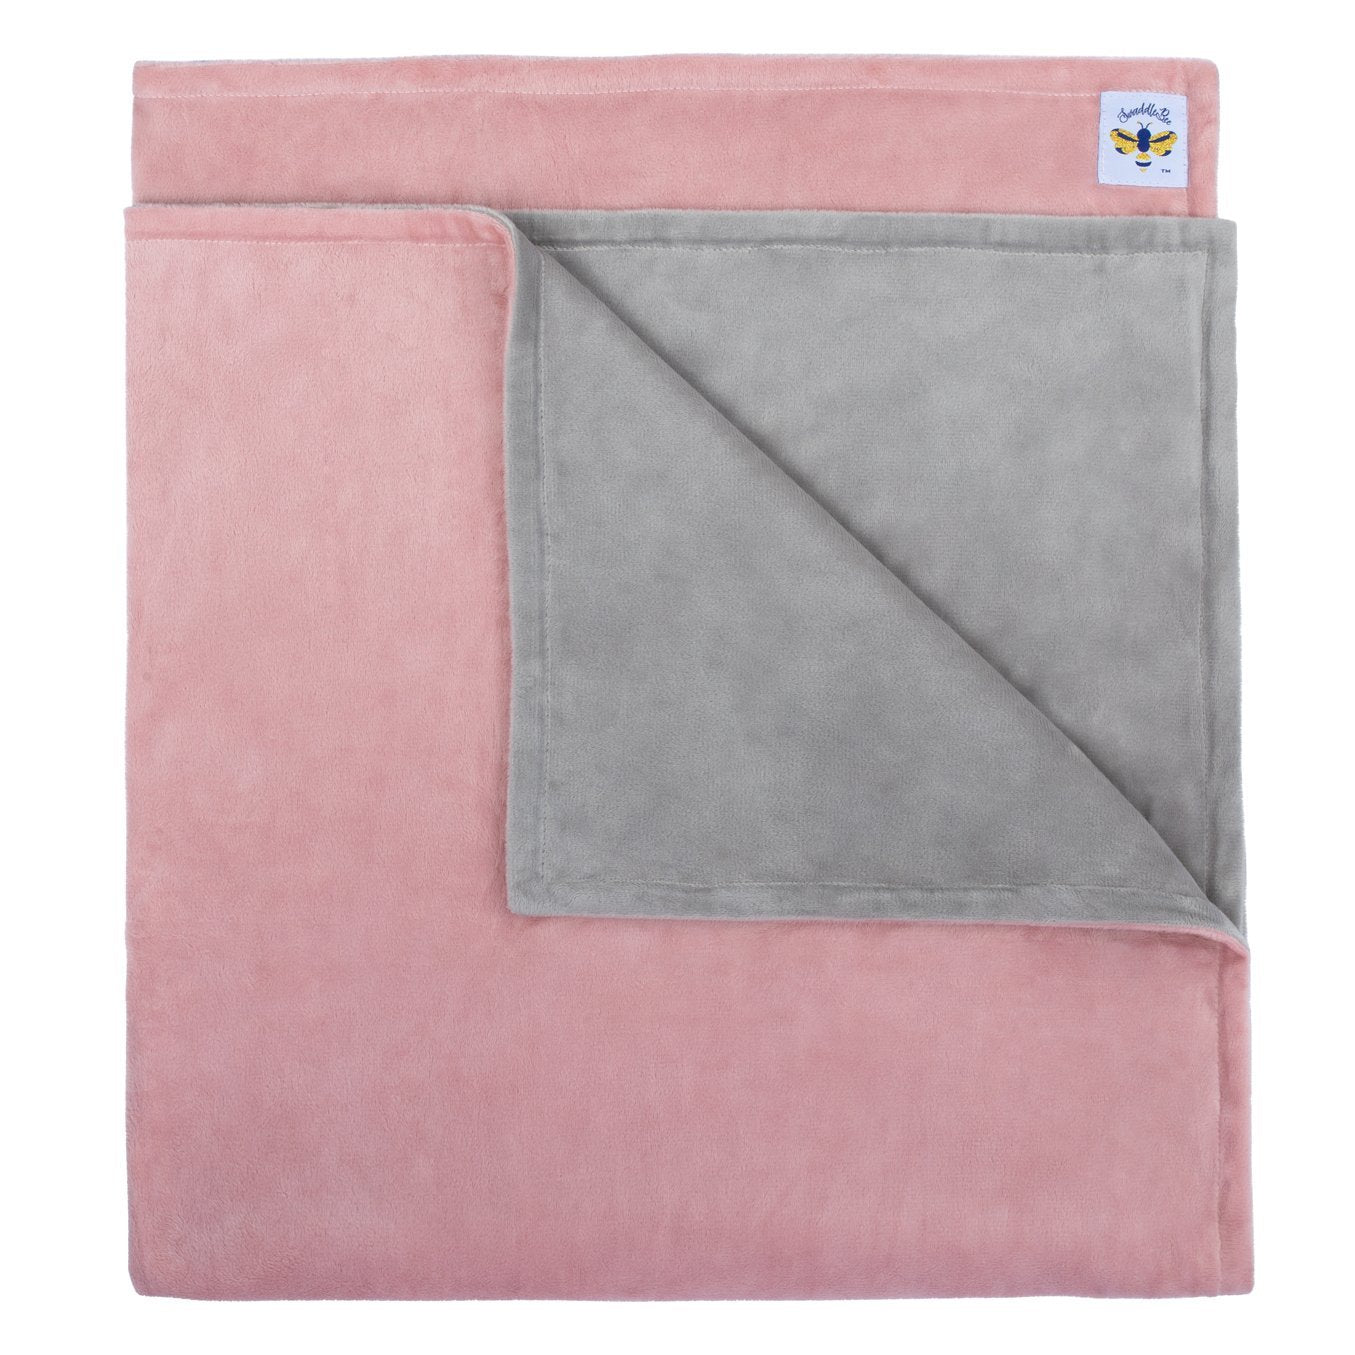 MinkyBee Stroller Blanket Dusty Pink/Grey